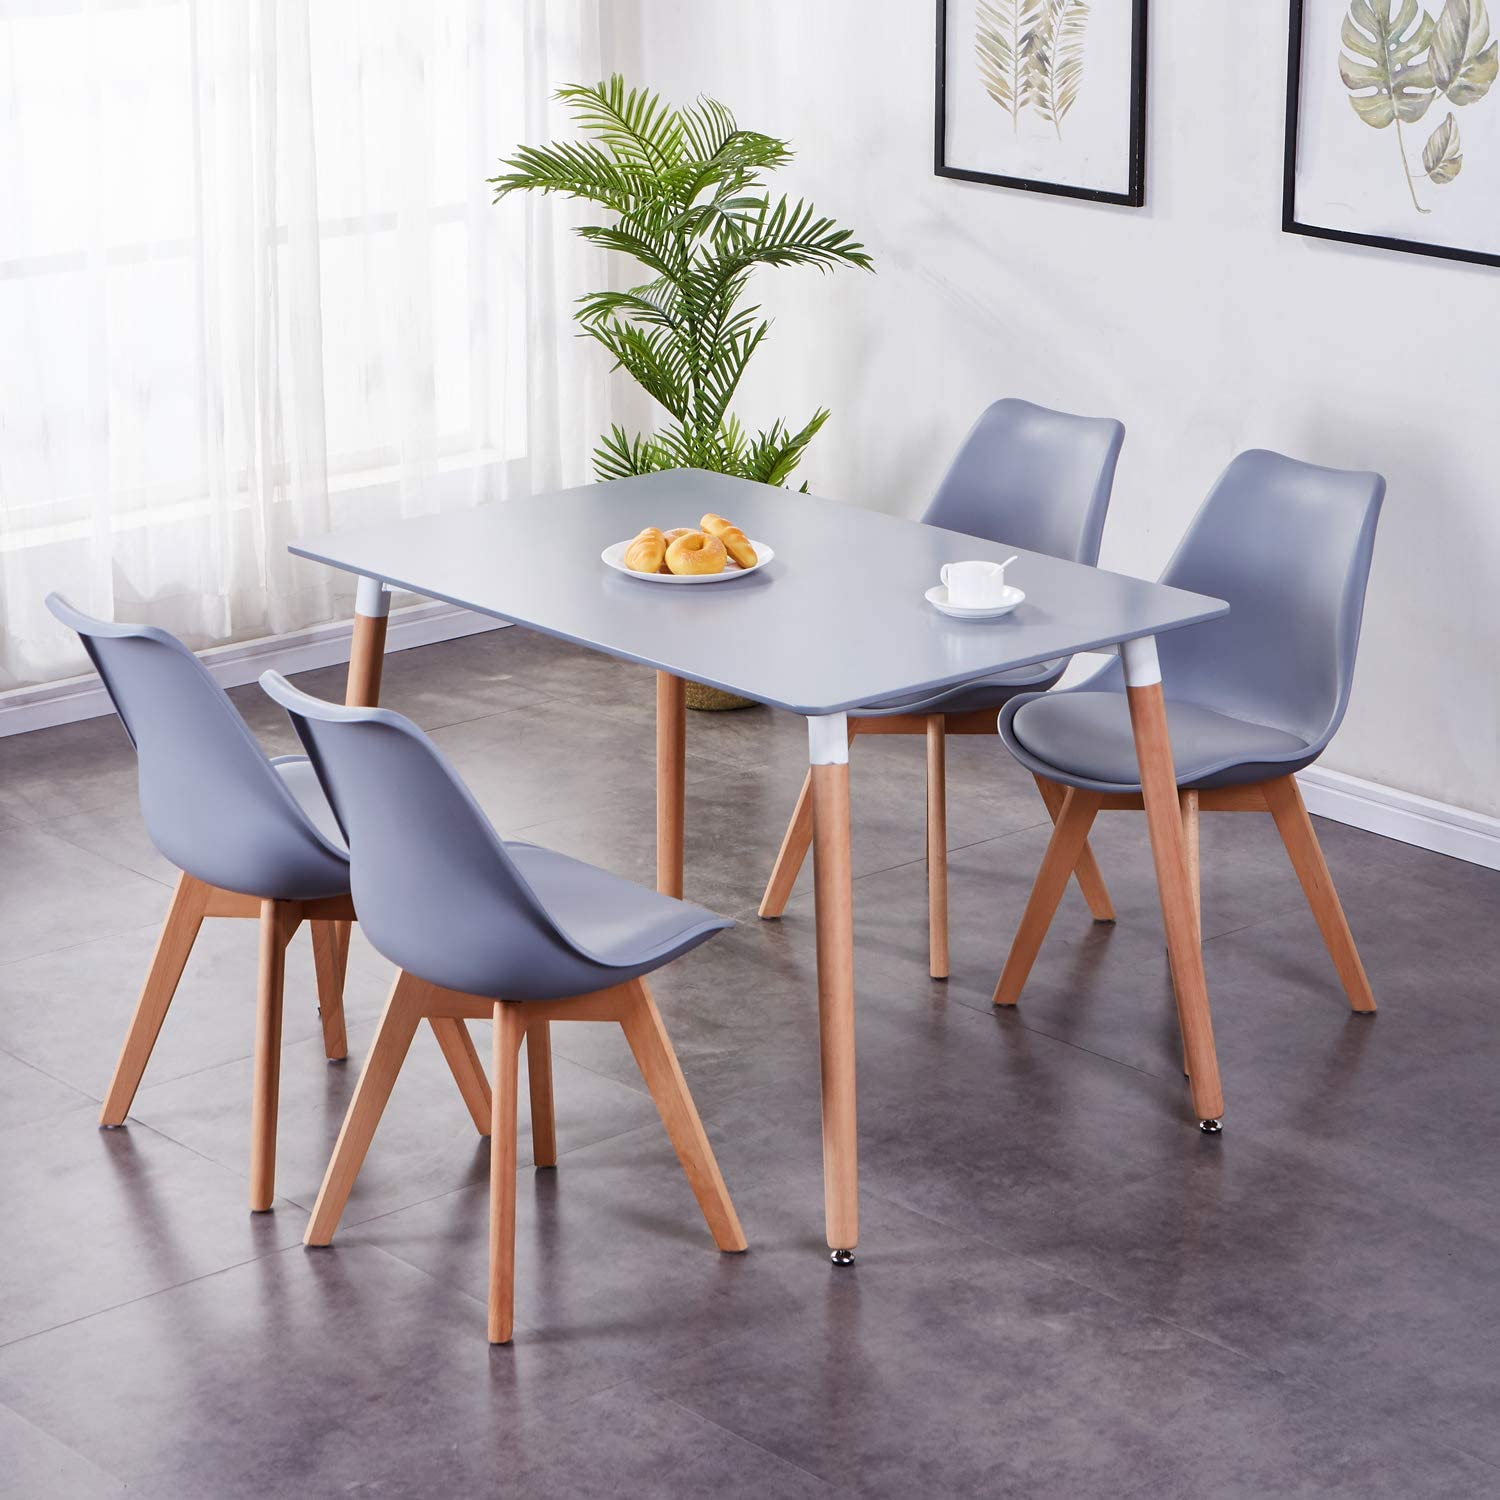 GOLDFAN Rectangle Dining Table and 10 Chairs Modern Kitchen Table and  Cushioned Tulip Chairs Dining Room Set Furniture,Grey